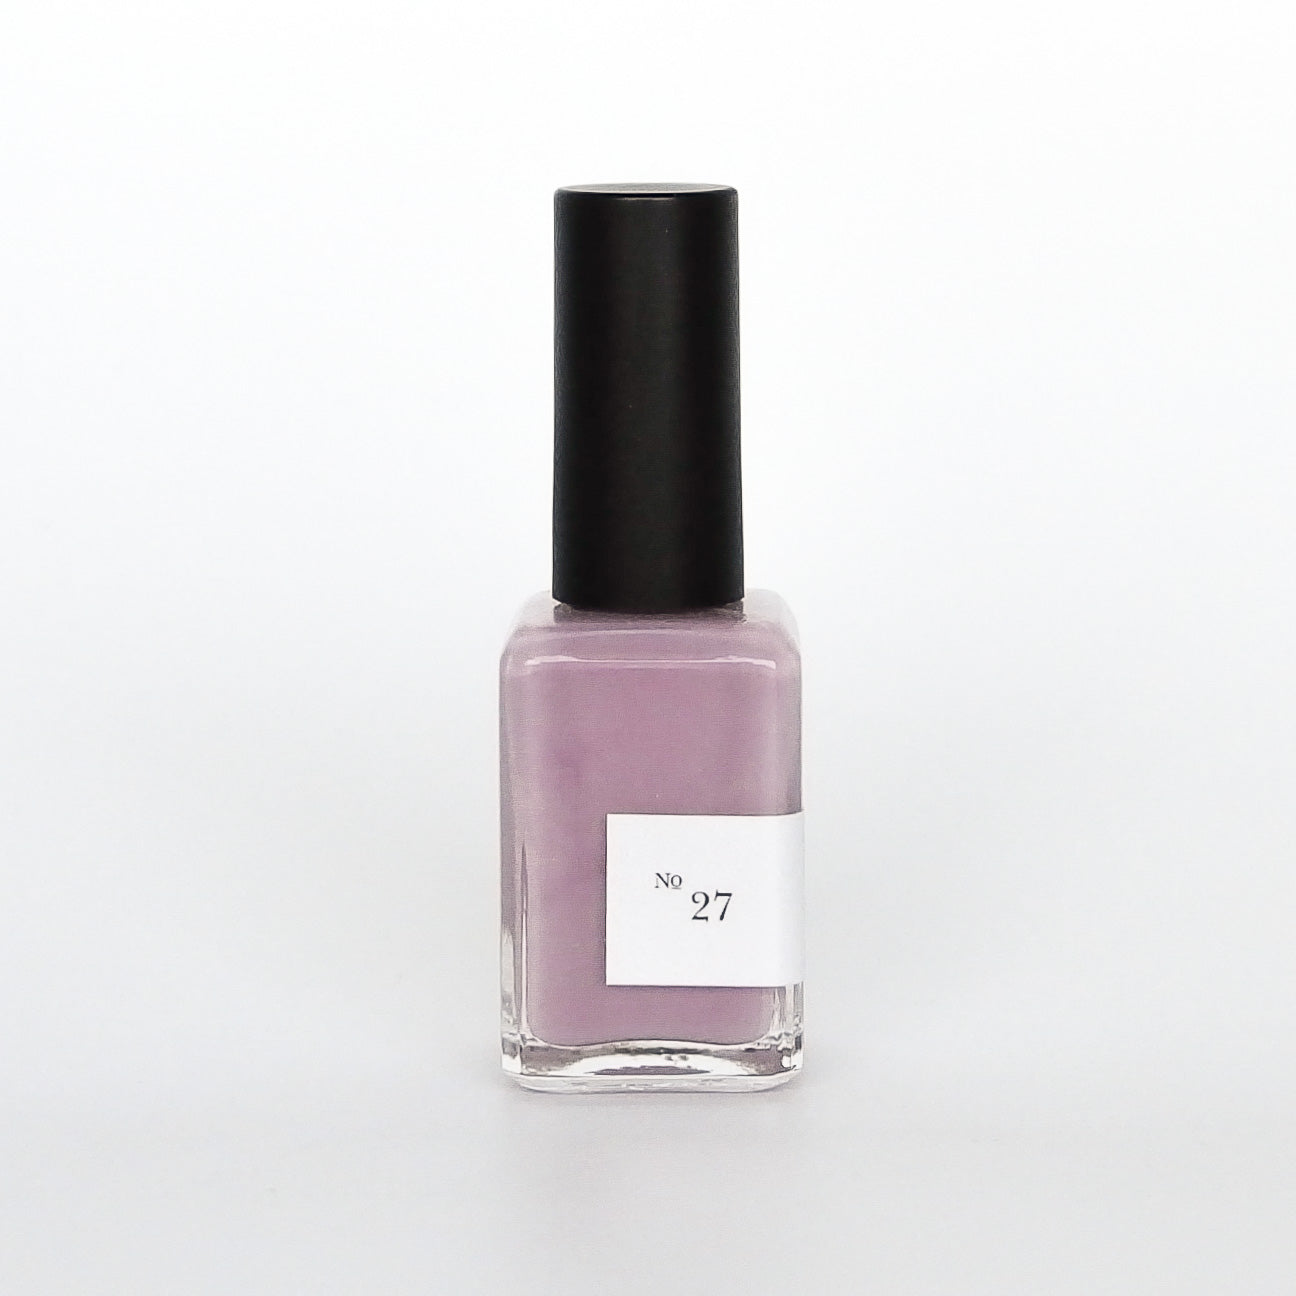 Sundays Nail Lacquer No.27, Nails, Sundays - Astrid Wylde